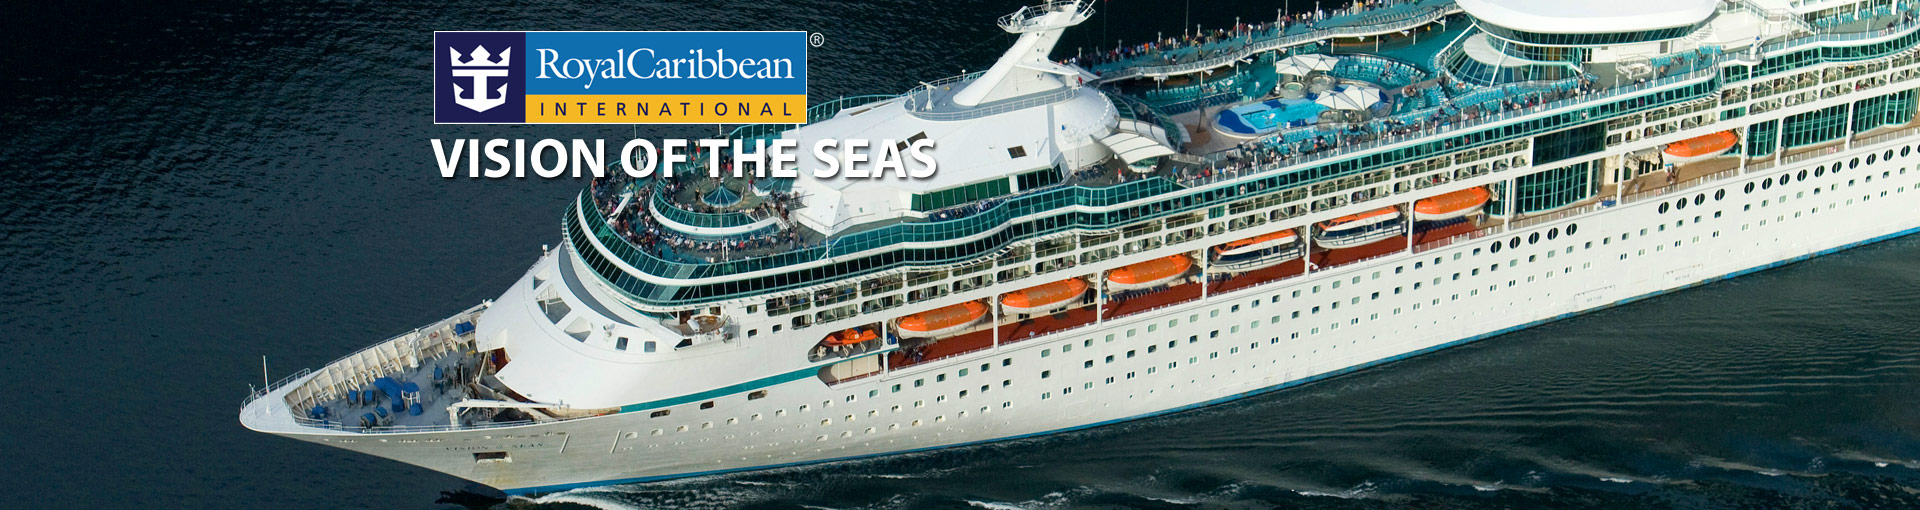 100 Freedom Of The Seas Floor Plan Deck Plans